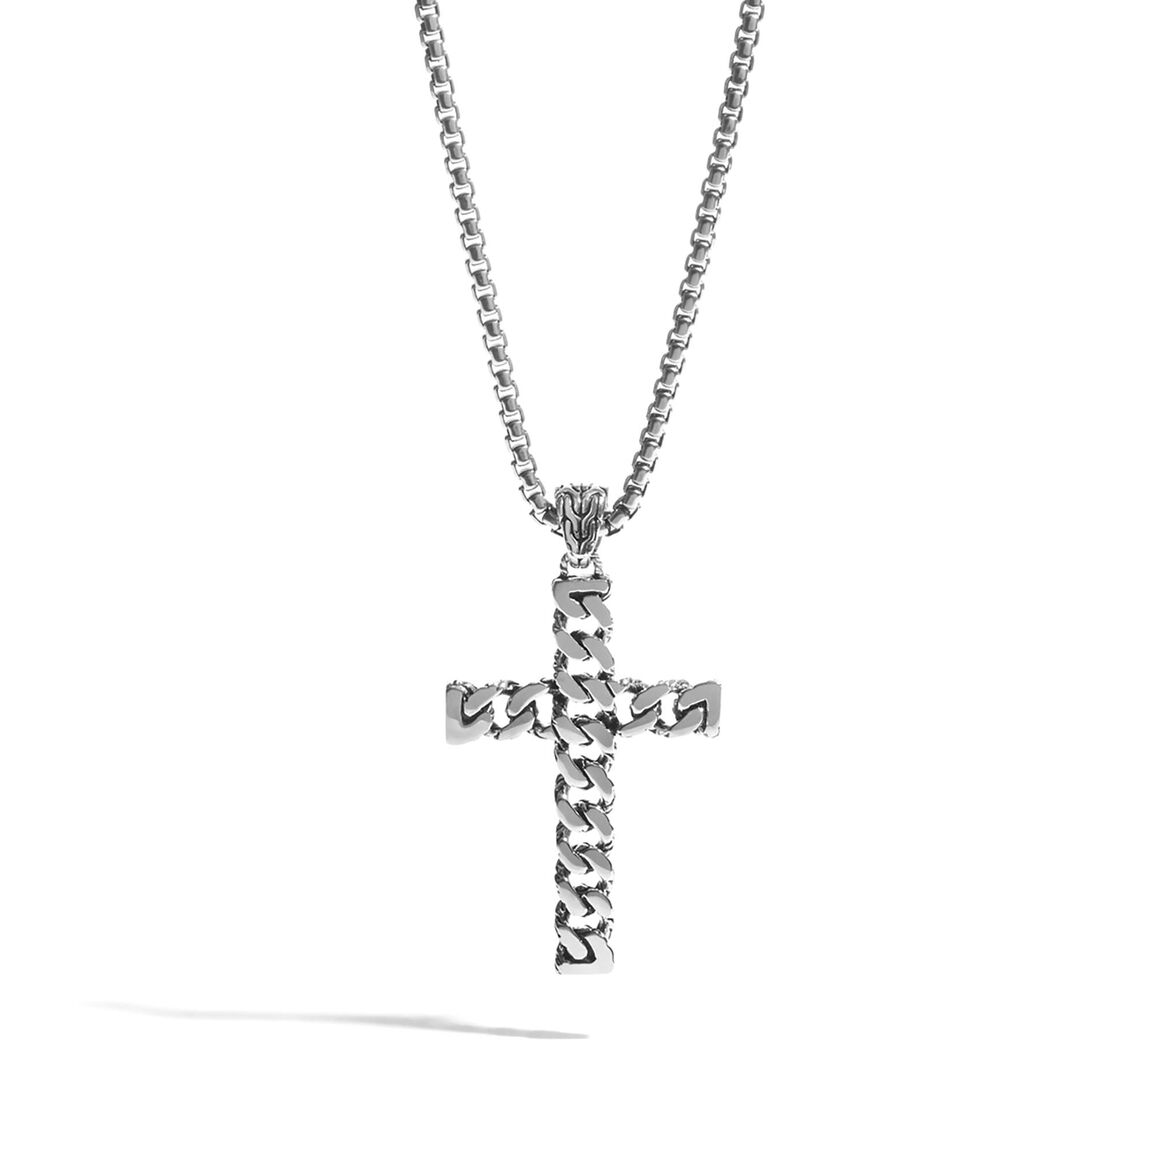 Chain cross necklace in silver classic chain cross necklace in silver aloadofball Image collections